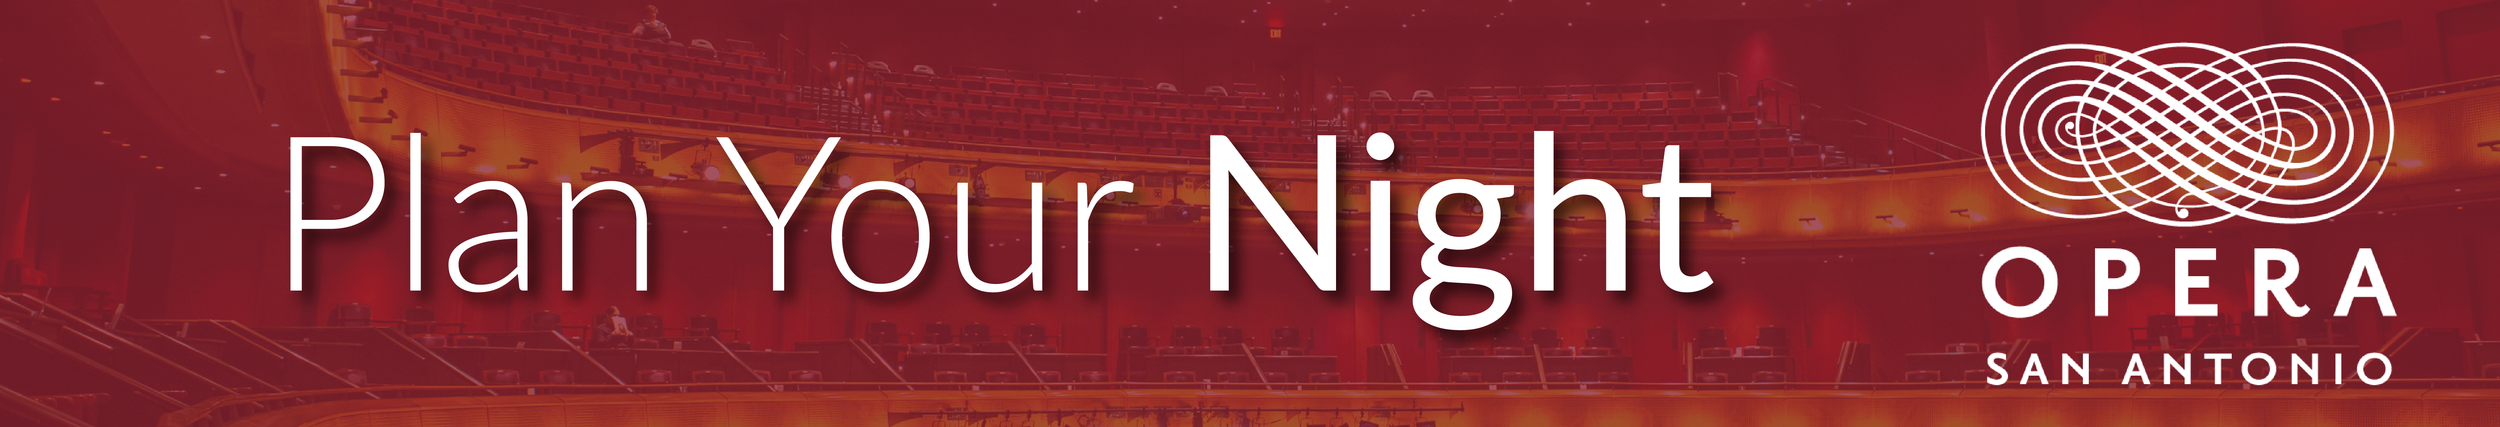 PlanYourNight_header-01.png